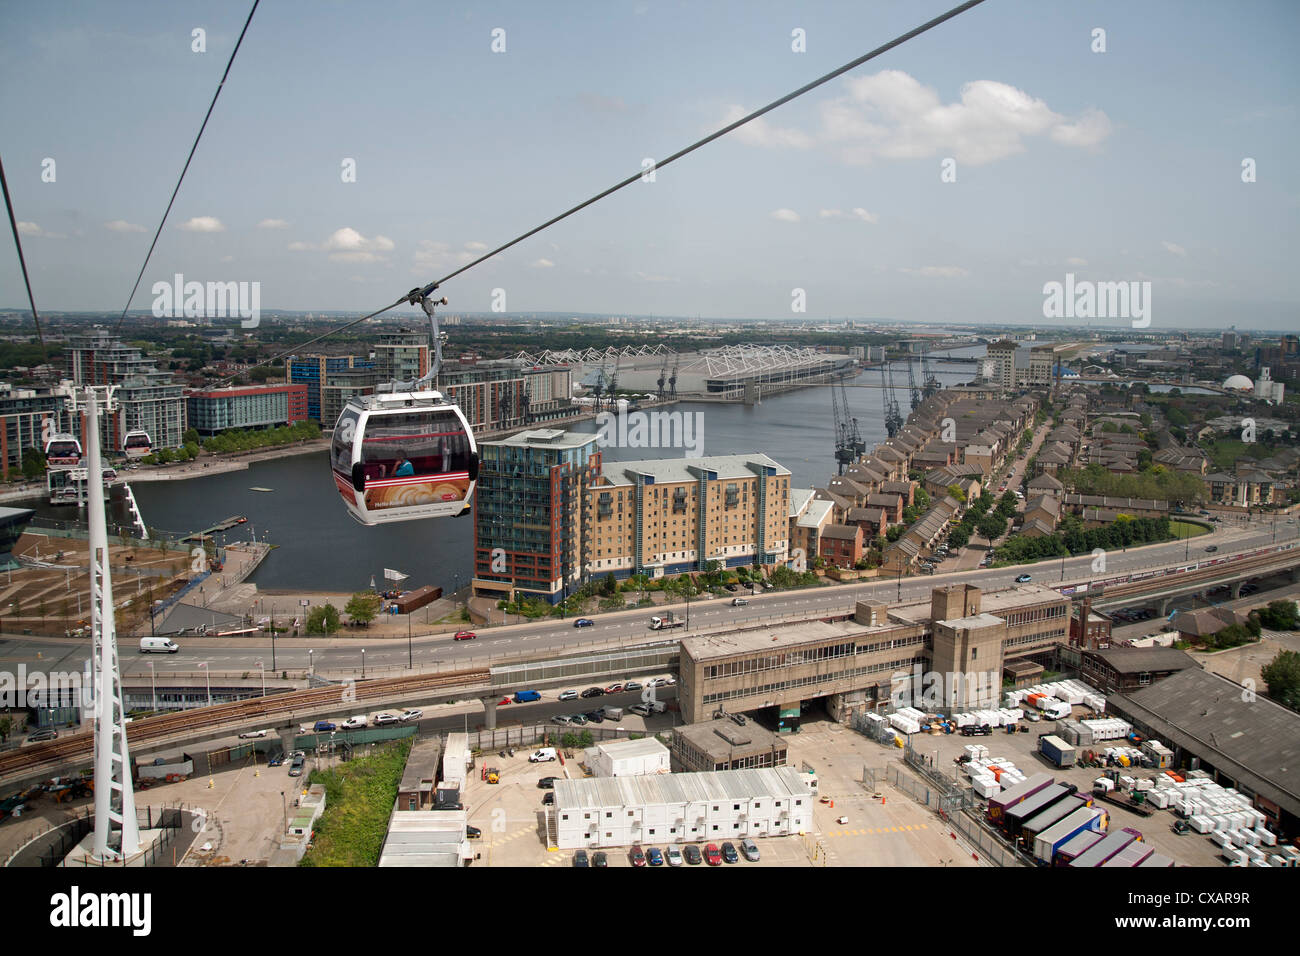 View from a cable car during the launch of the Emirates Air Line showing Excel Exhibition Centre in background, - Stock Image